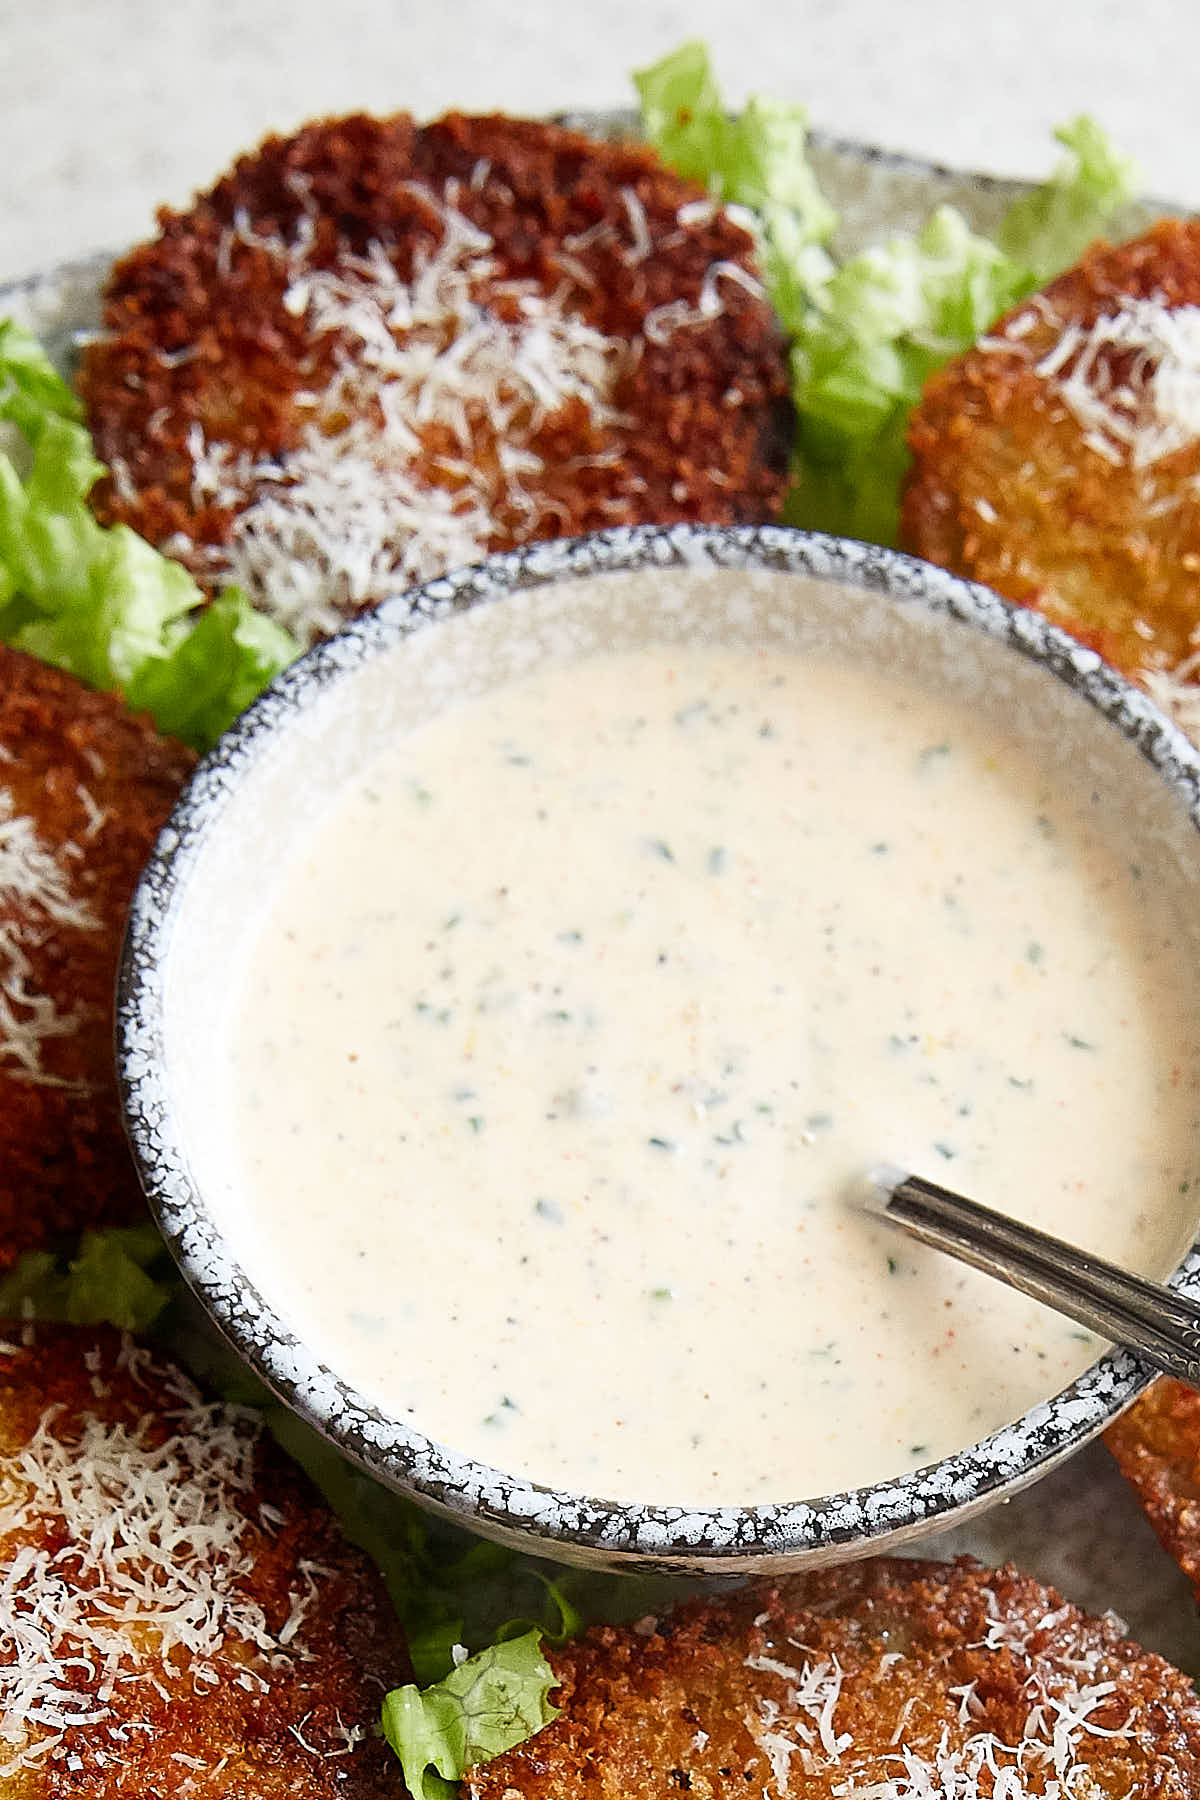 A grey speckled bowl filled with homemade buttermilk ranch dressing, with a spoon inside and fried tomatoes arranged around it.